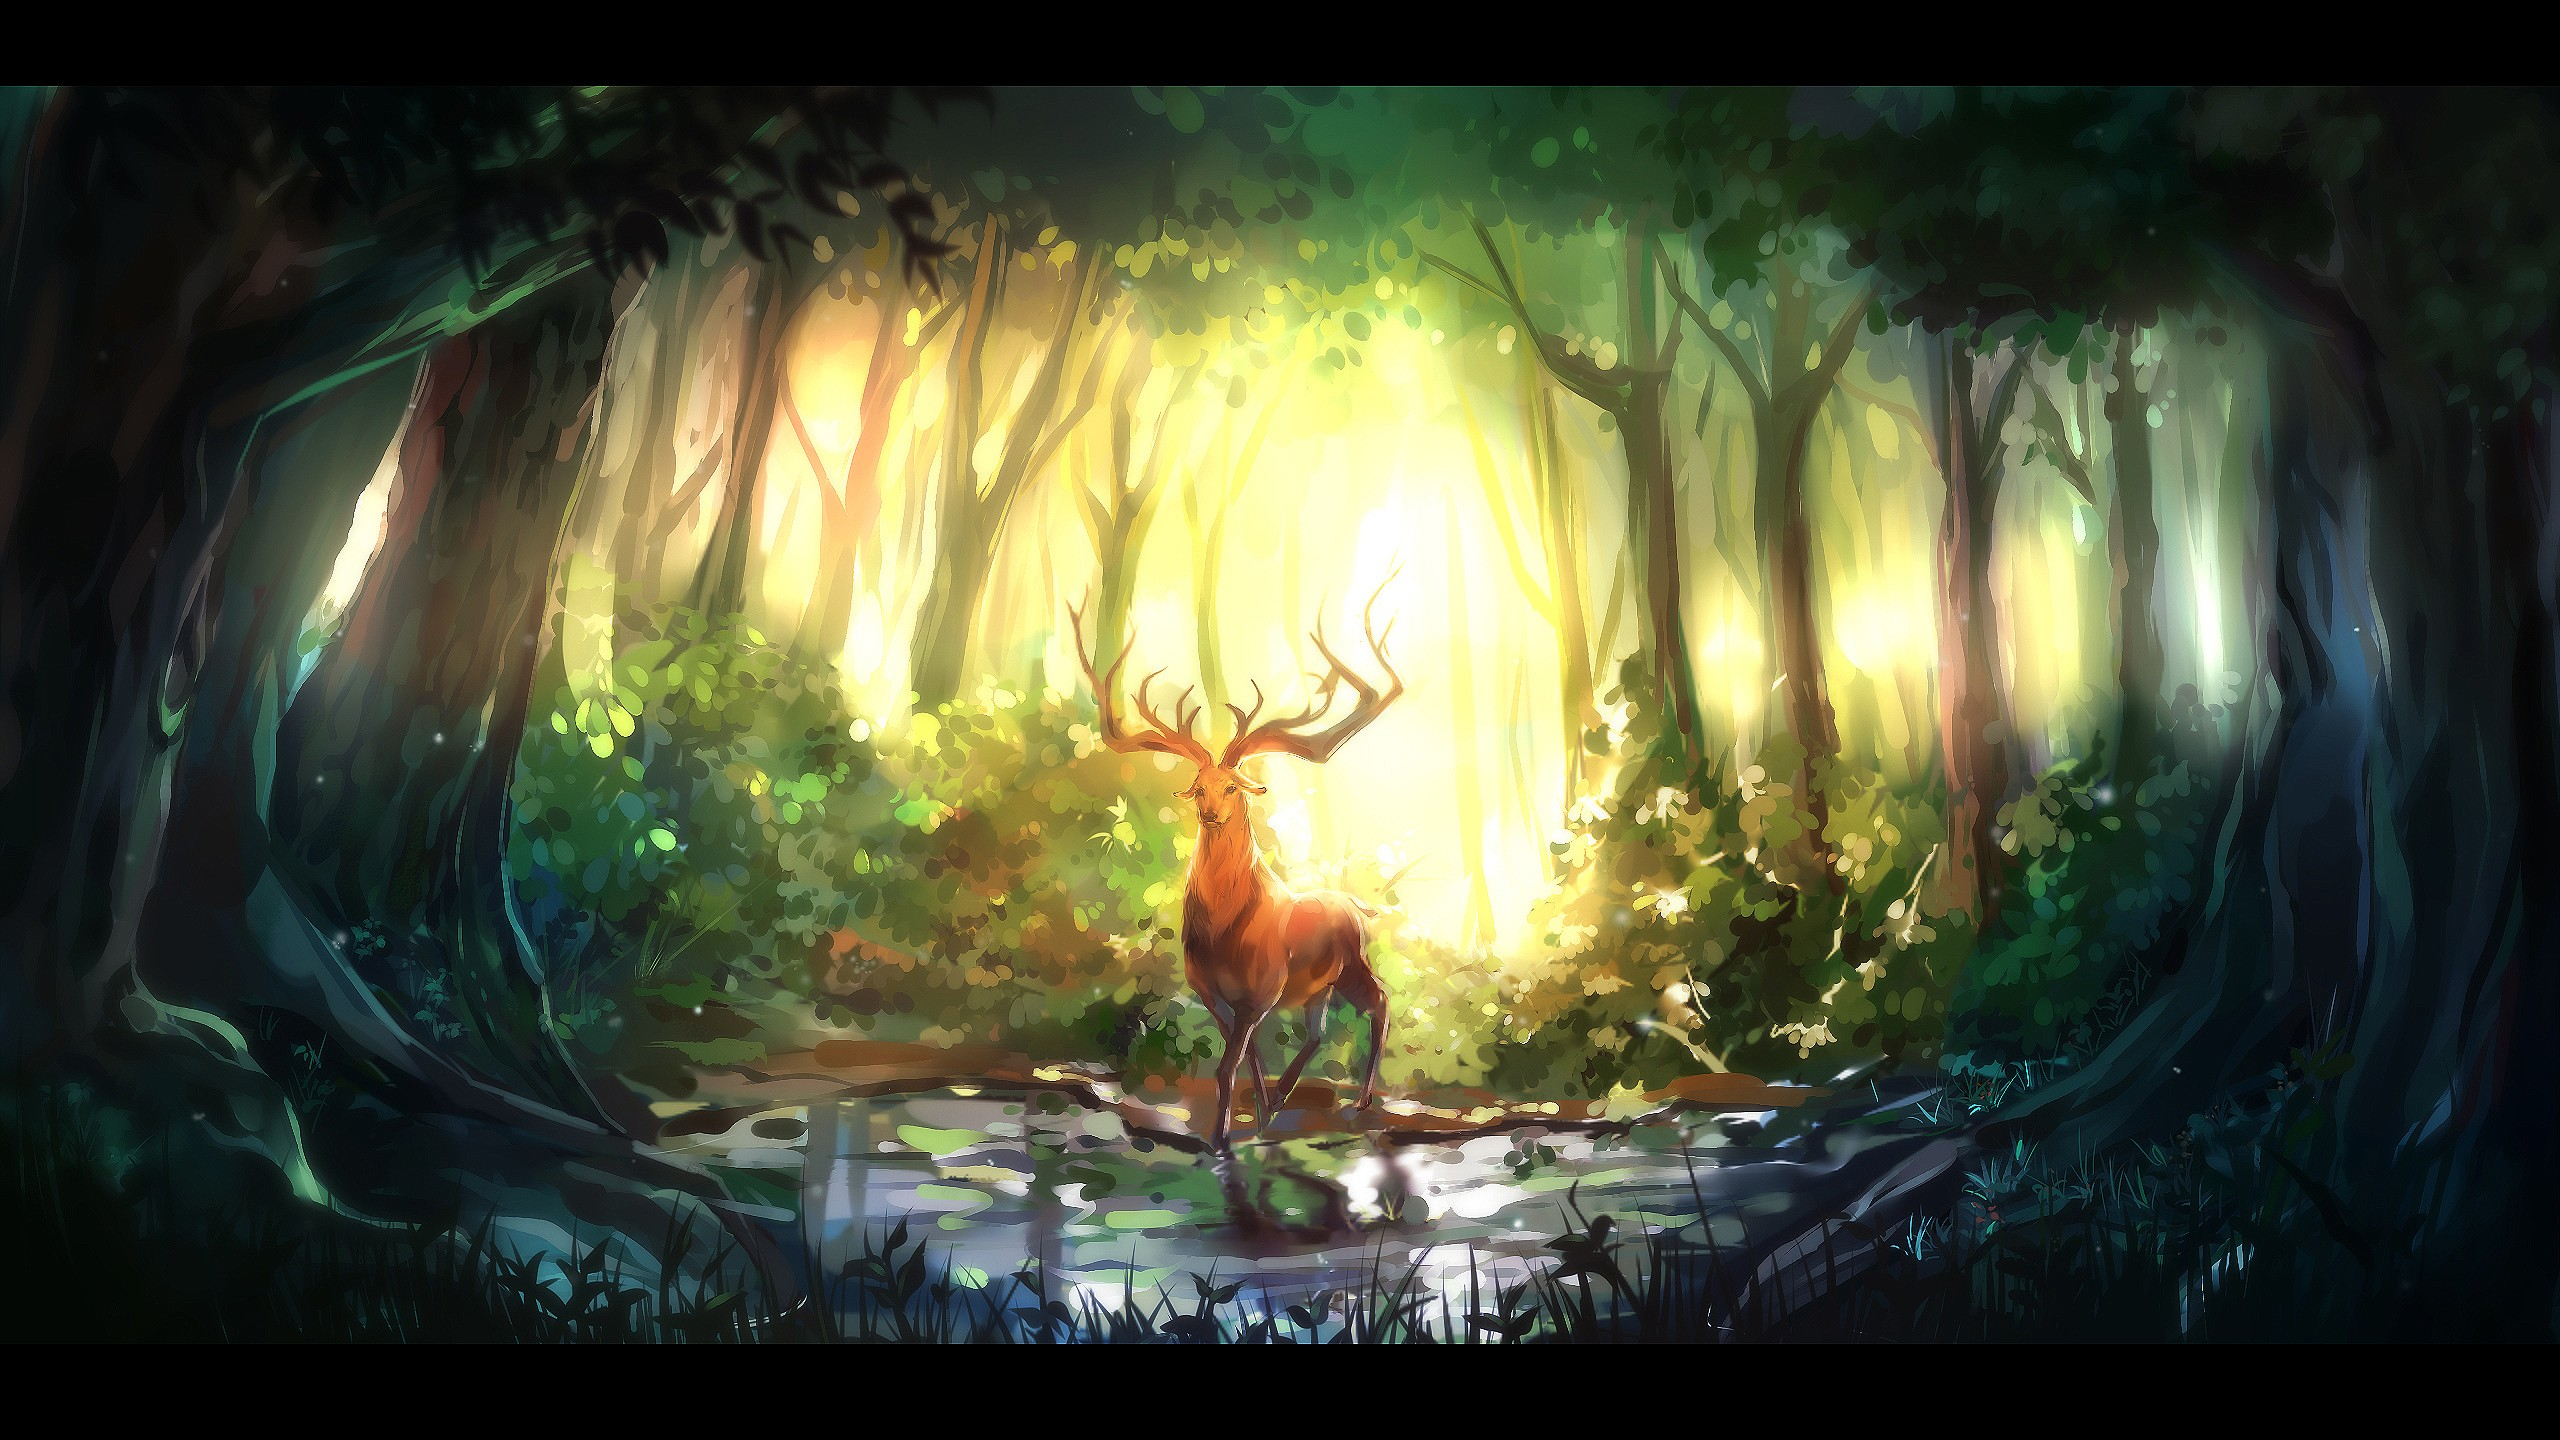 Fantasy deer sunlight art